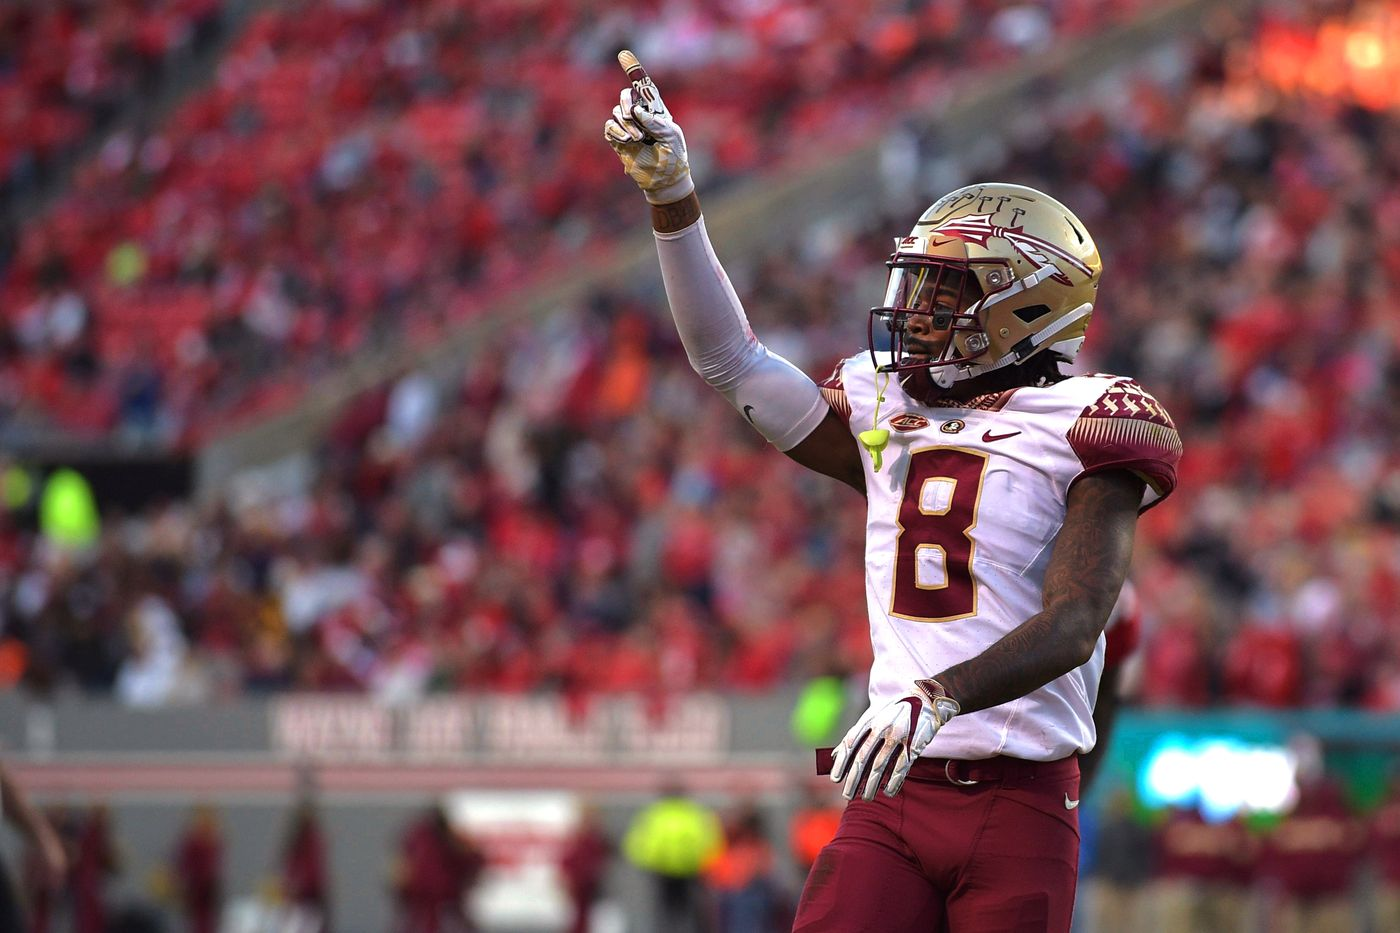 Continuing Undrafted CB Pipeline Possible this year